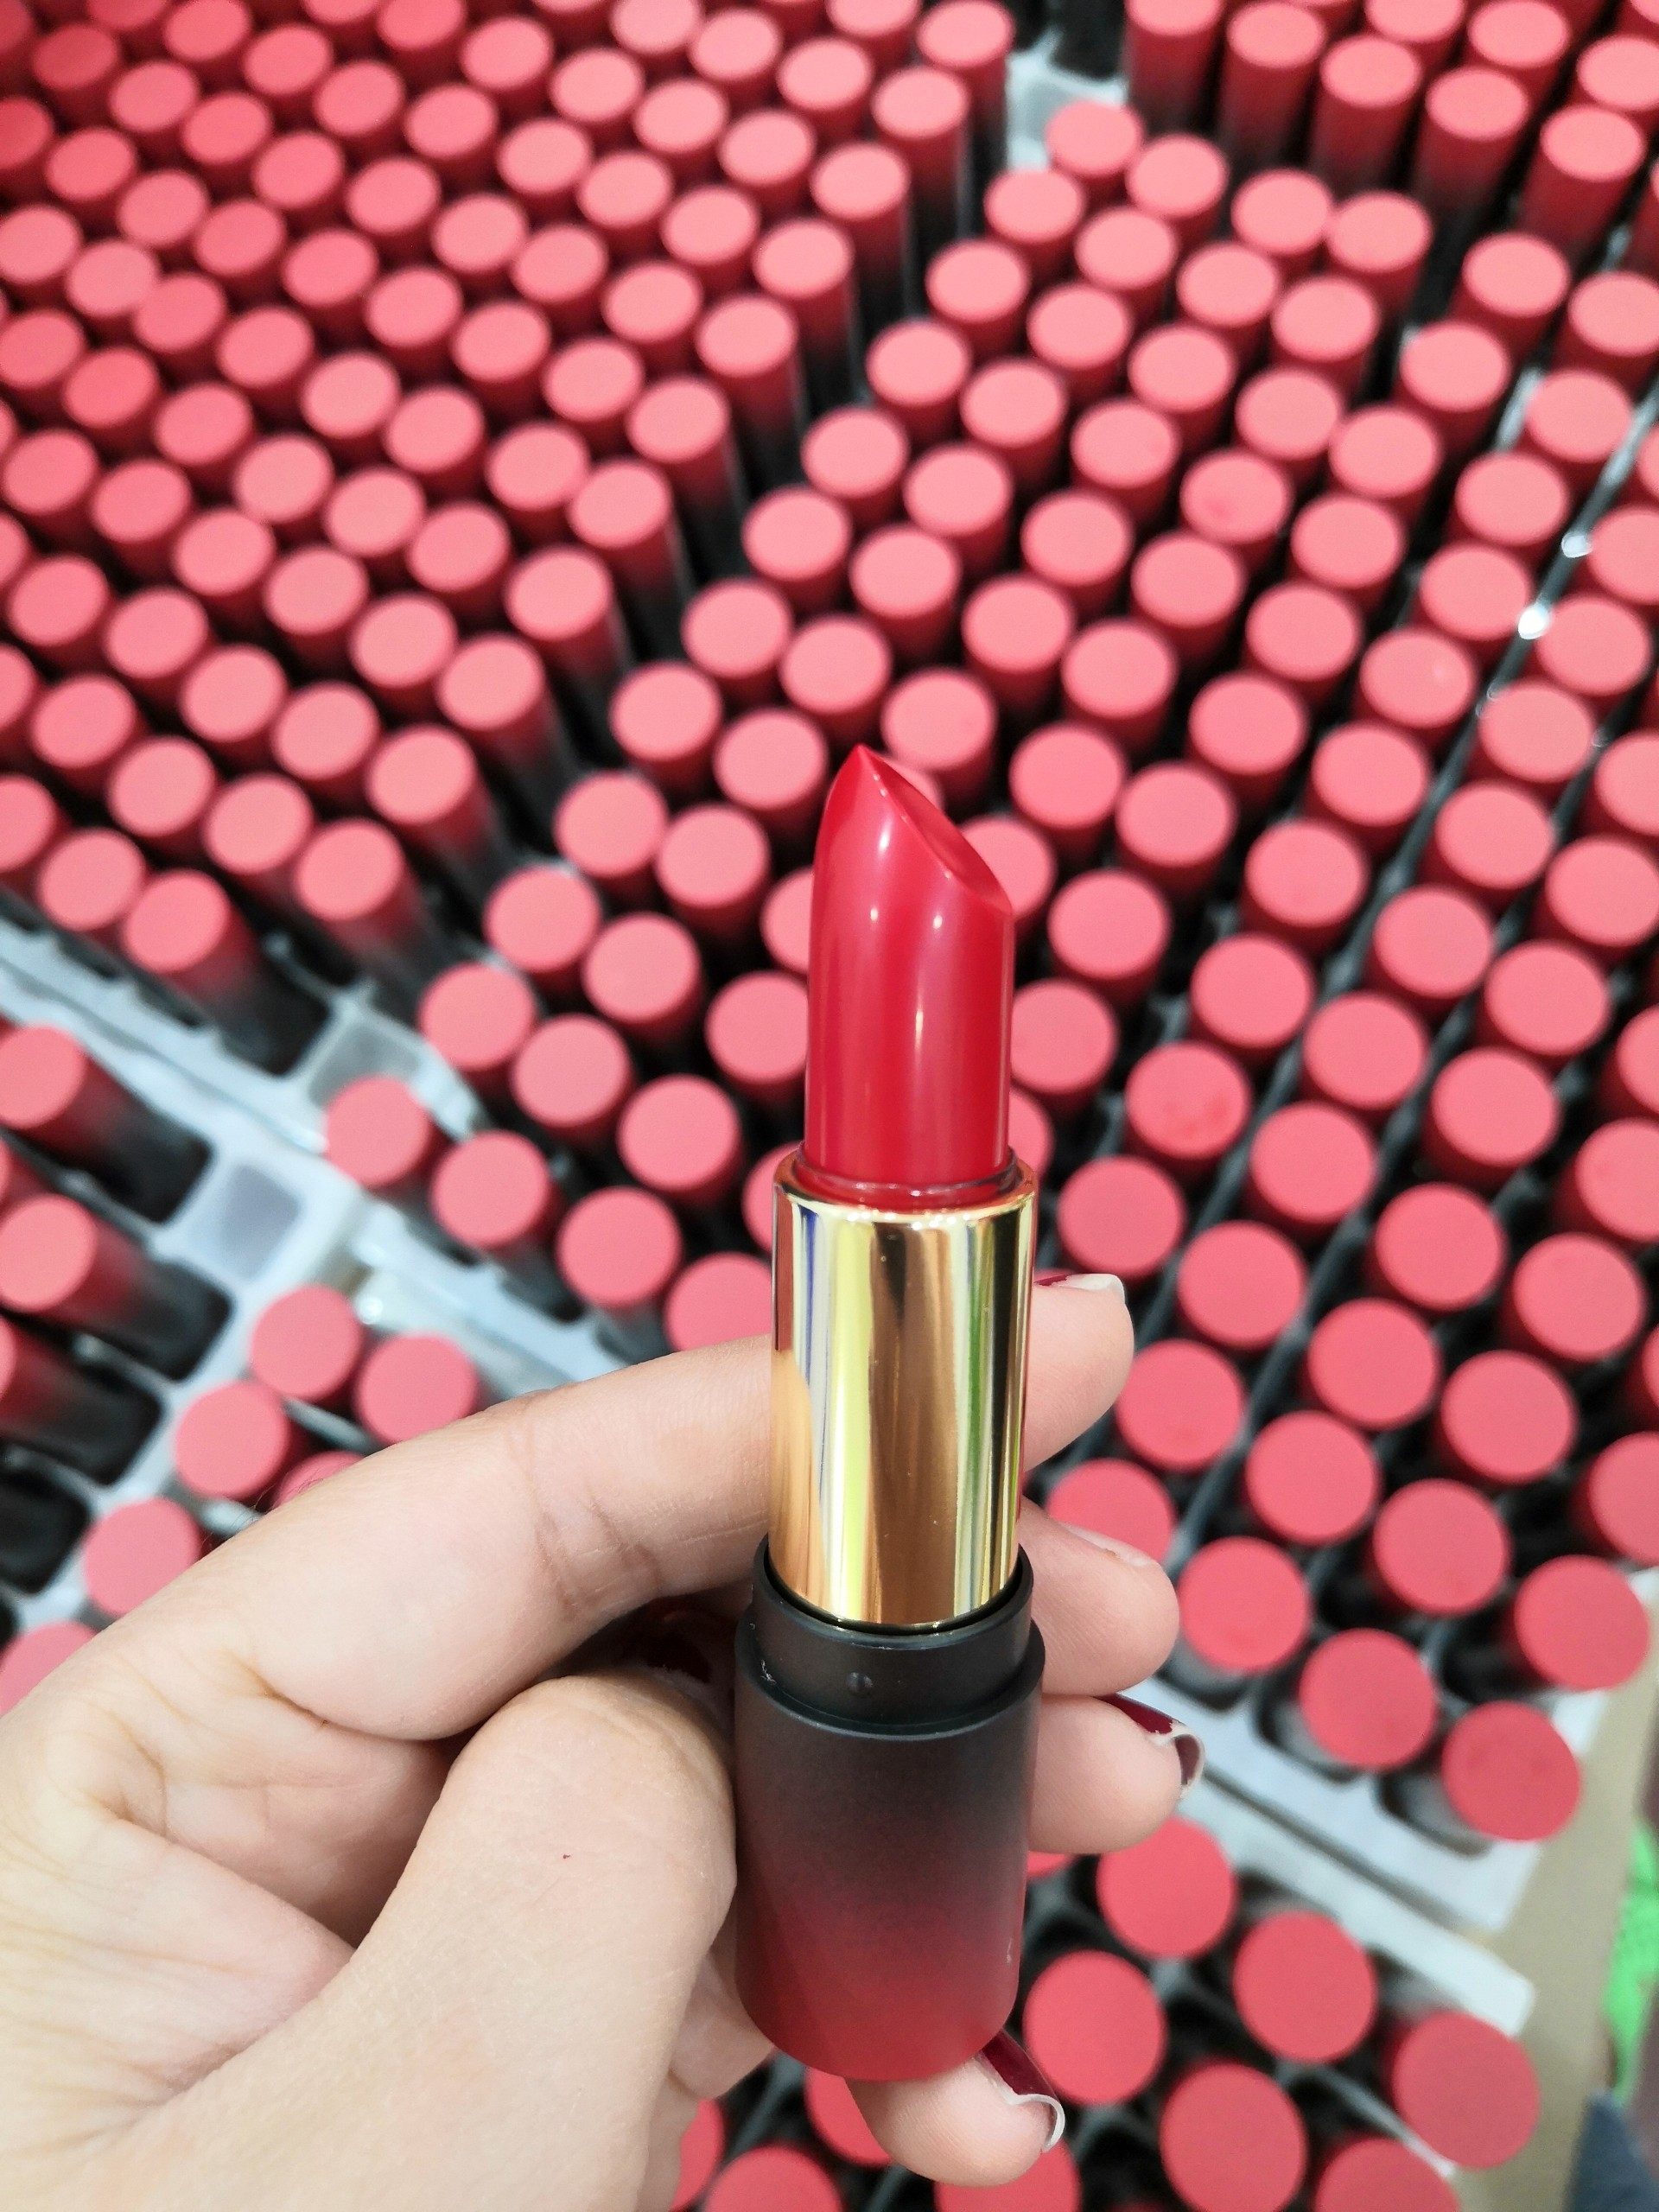 ECOSY NAUTURE LIPSTICK THE COLLAGEN RD103 - ĐỎ SAN HÔ